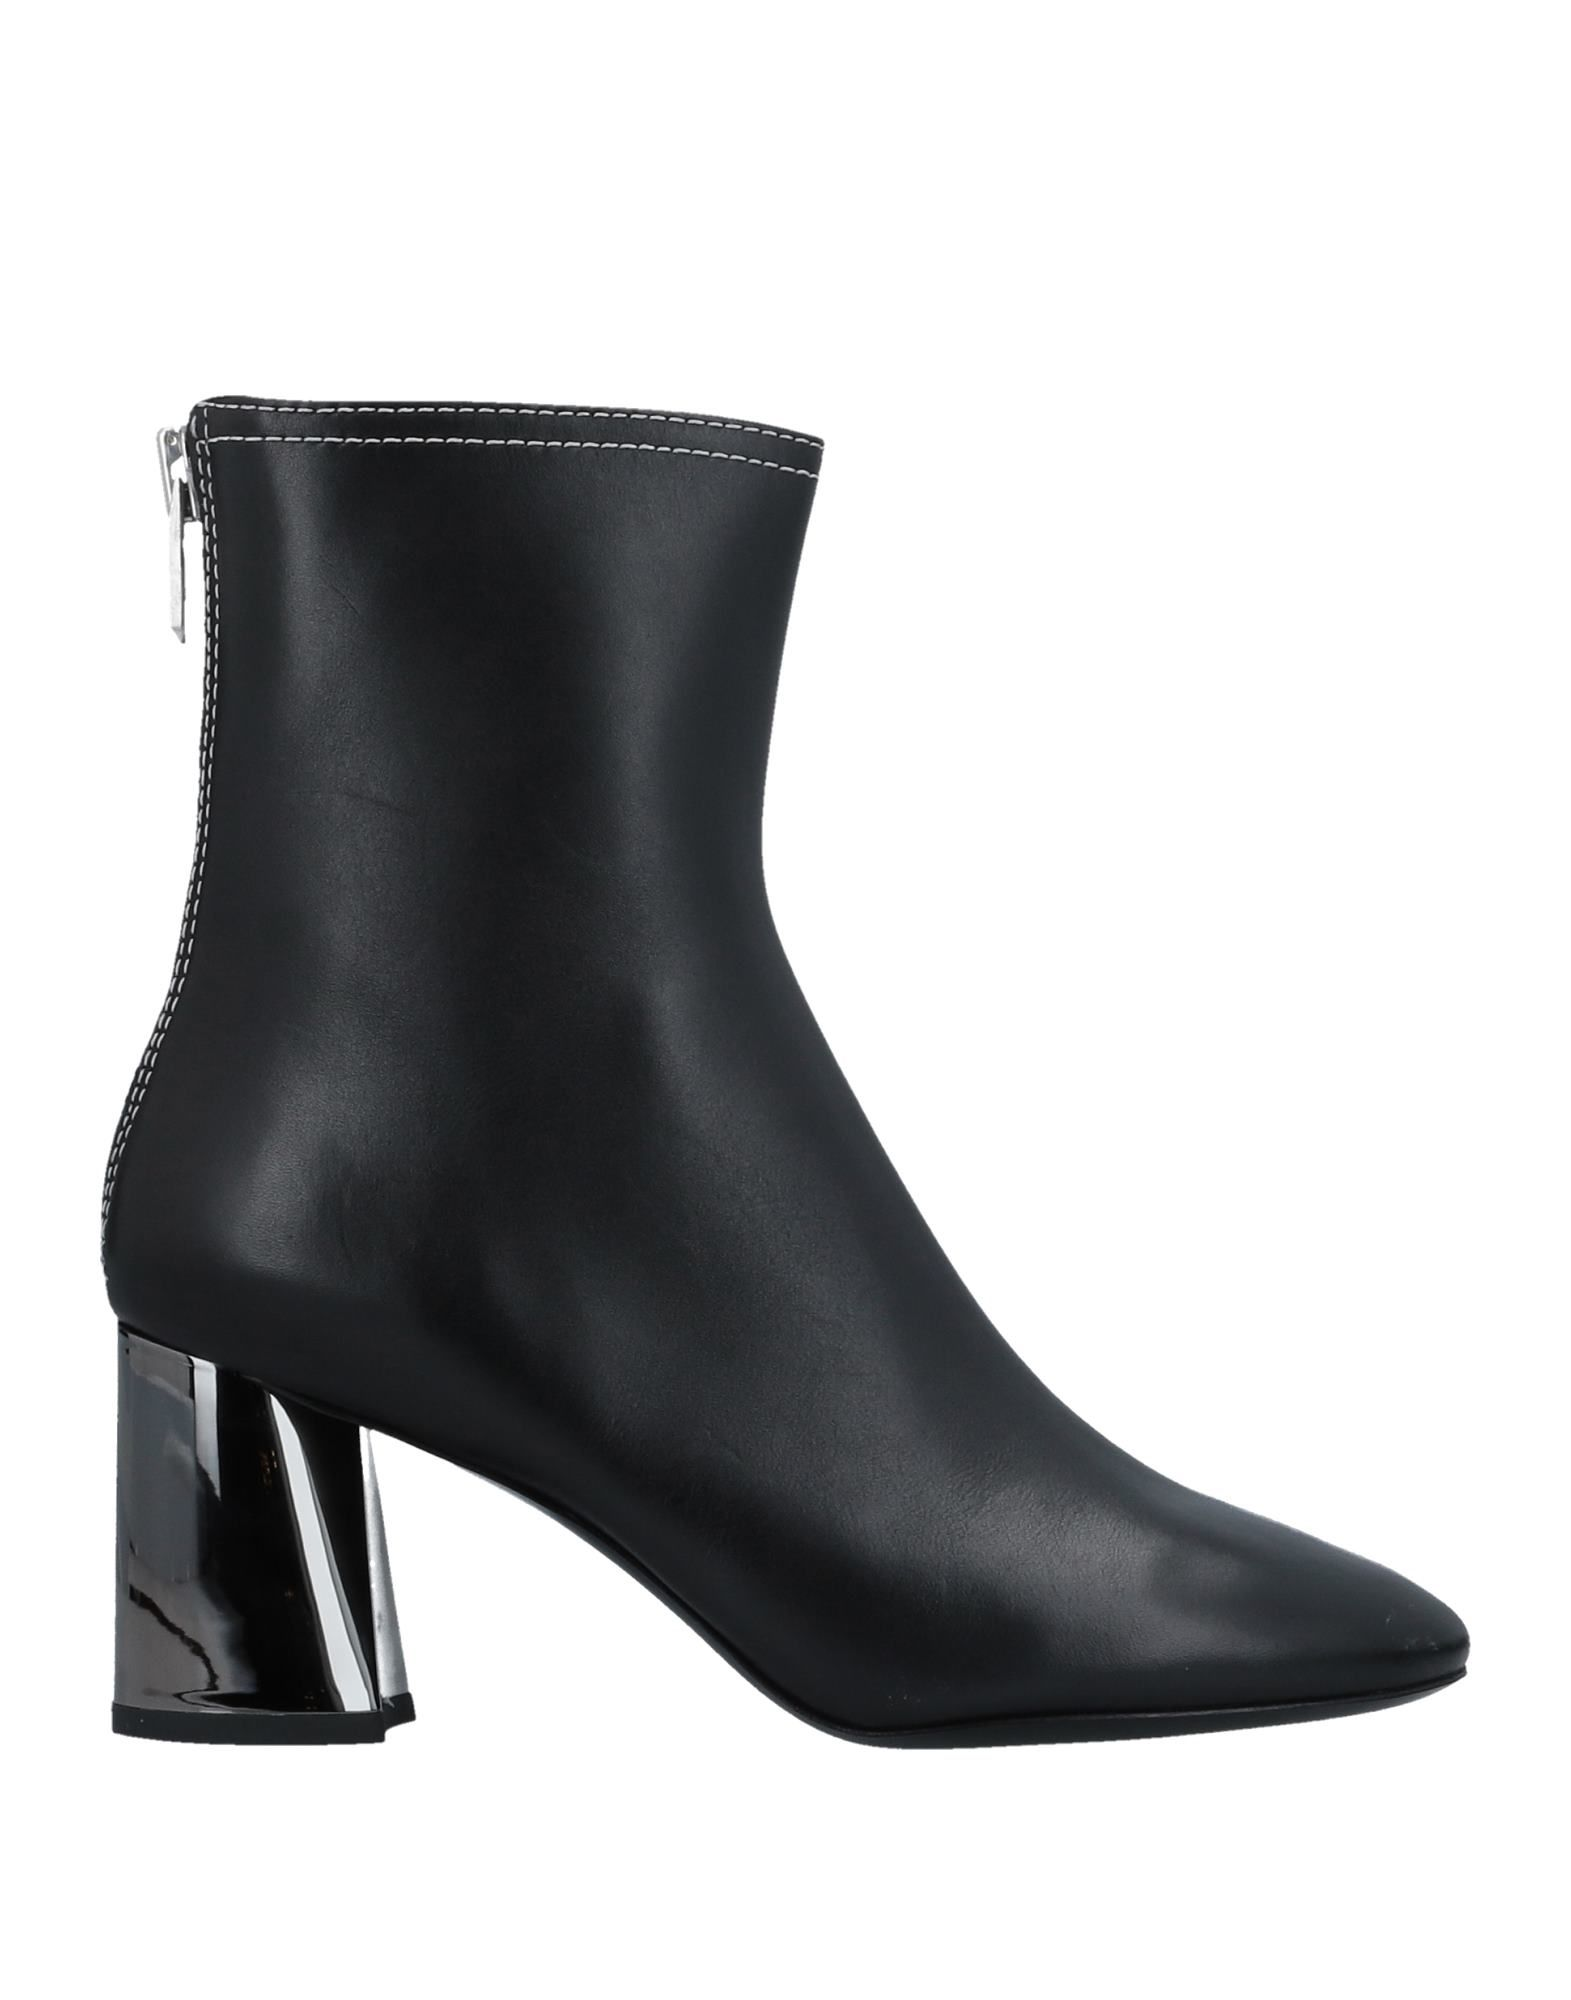 3.1 Phillip Lim 3.1 Ankle Boot - Women 3.1 Lim Phillip Lim Ankle Boots online on  Canada - 11511141RG 372483